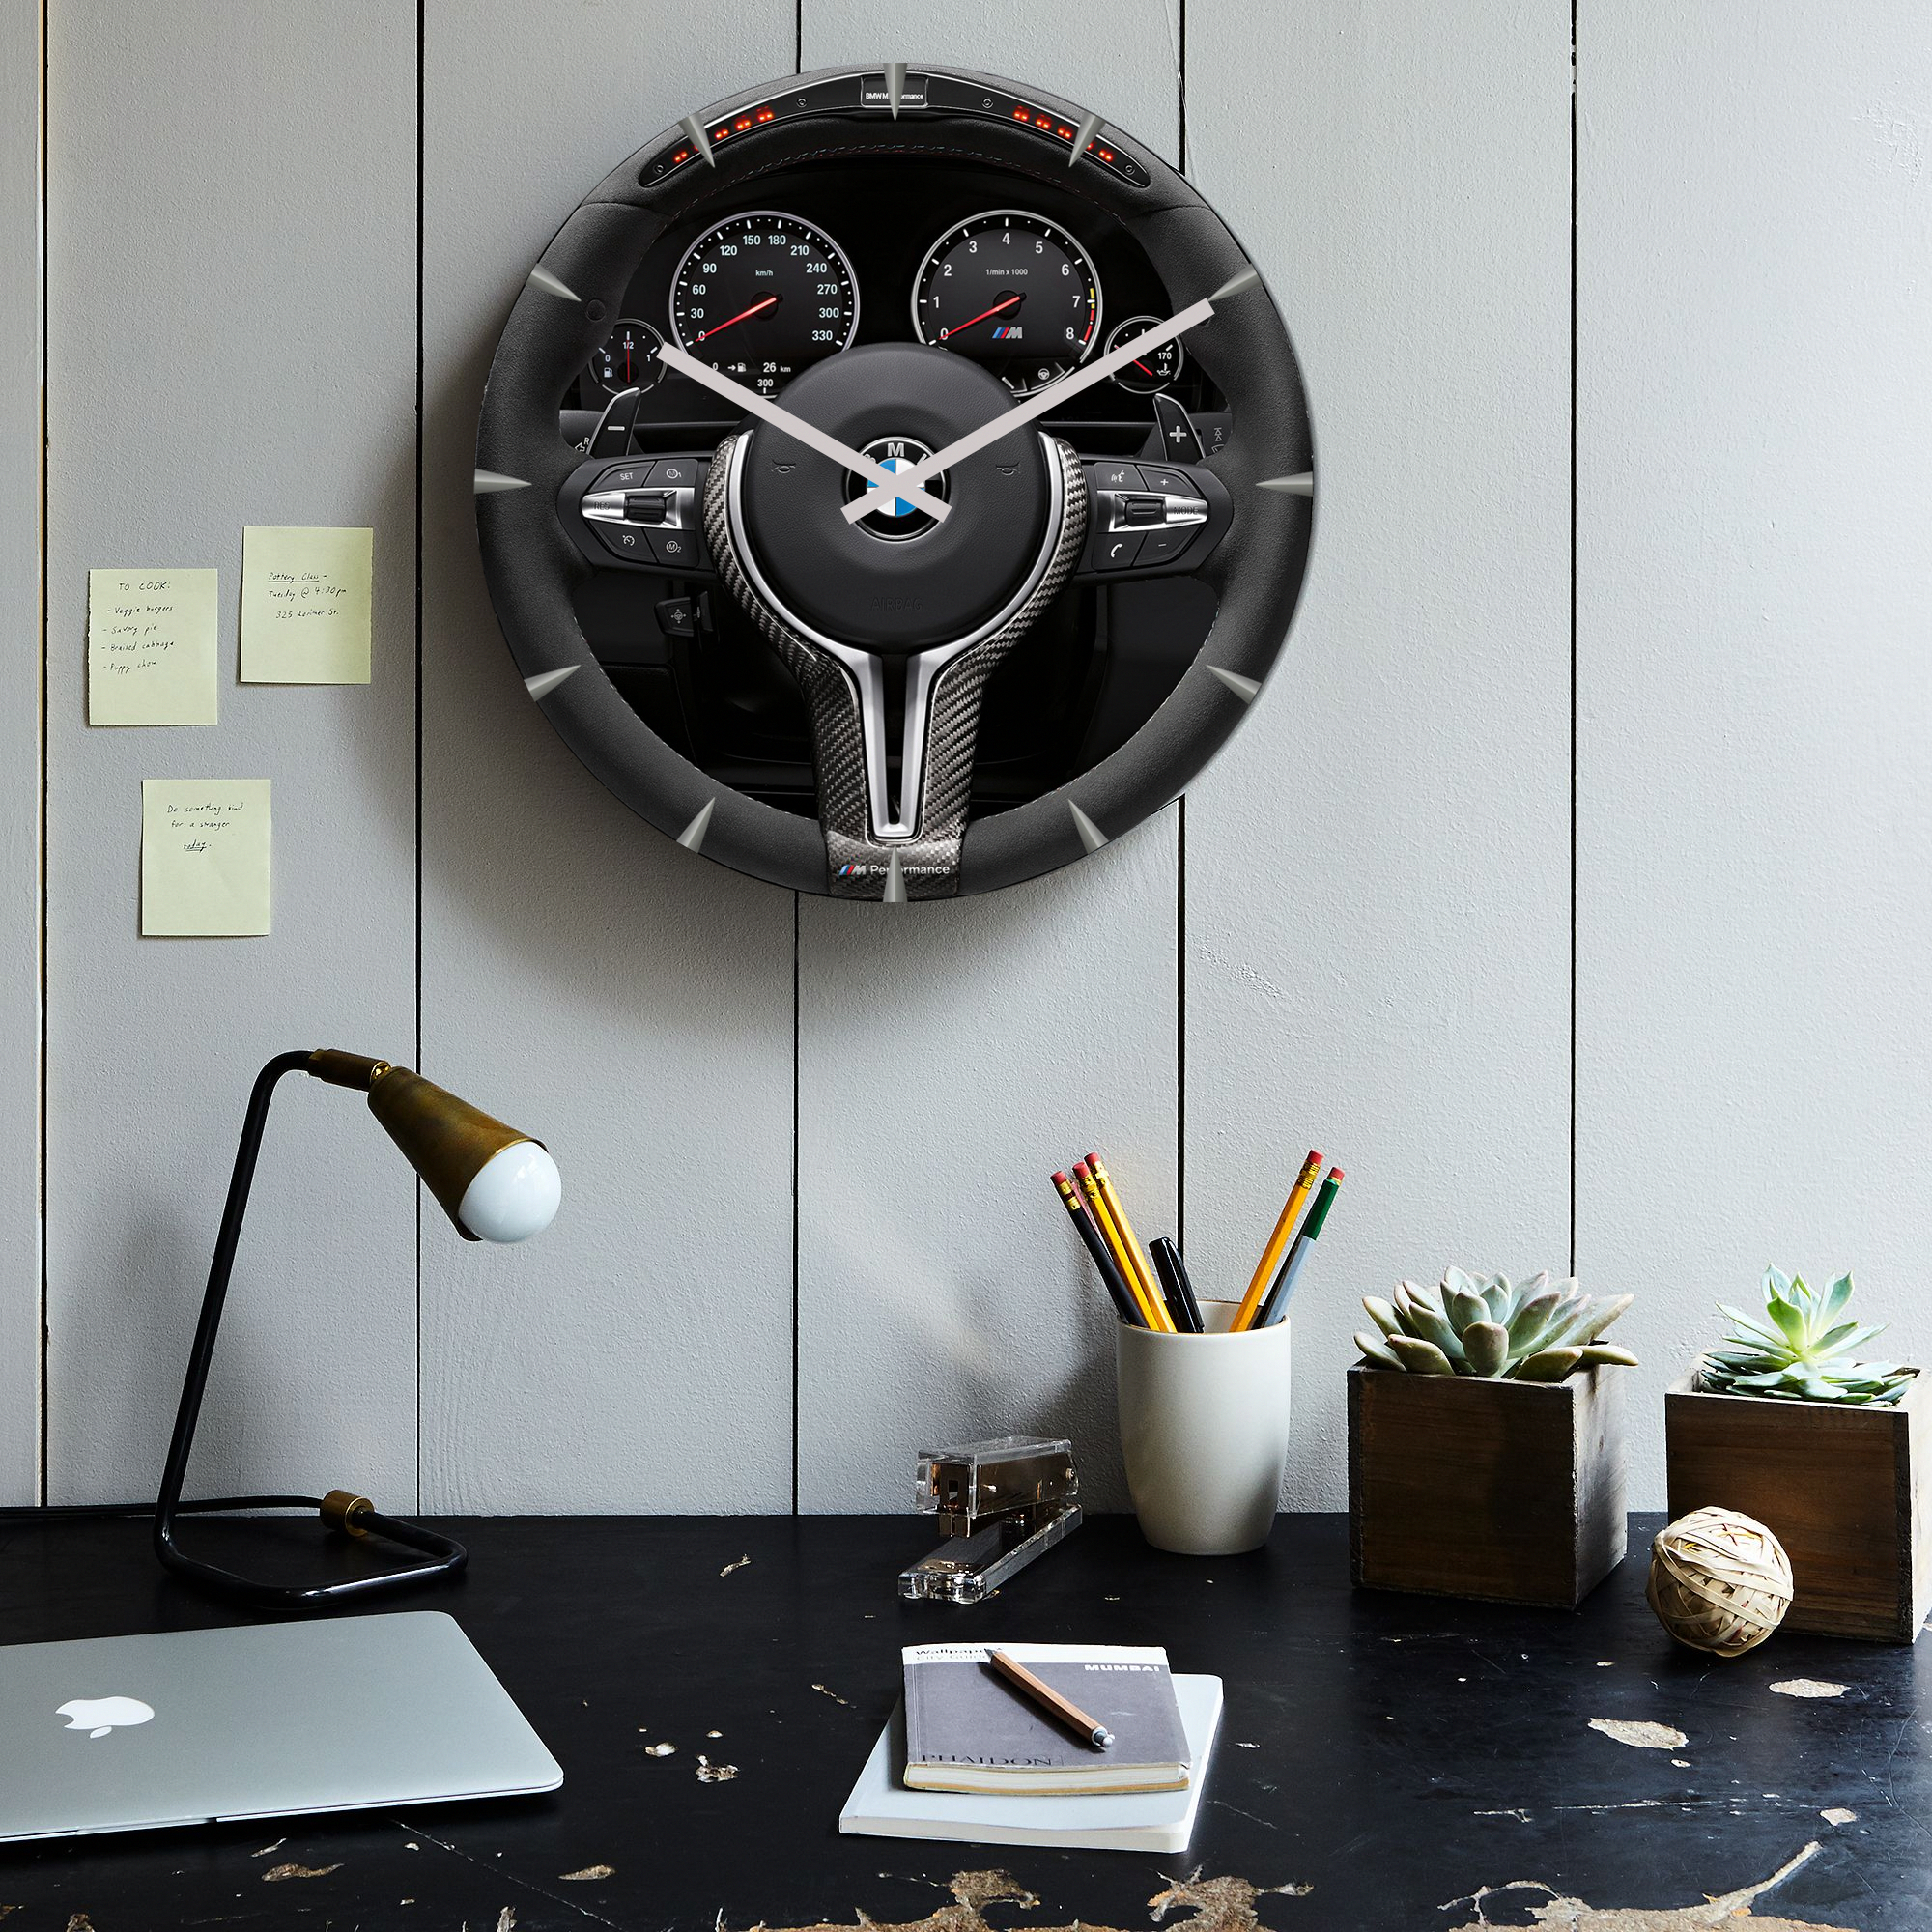 e8736909f65 Christmas Present Idea For Men BMW Steering Wheel Clock   inexpensivechristmaspresents